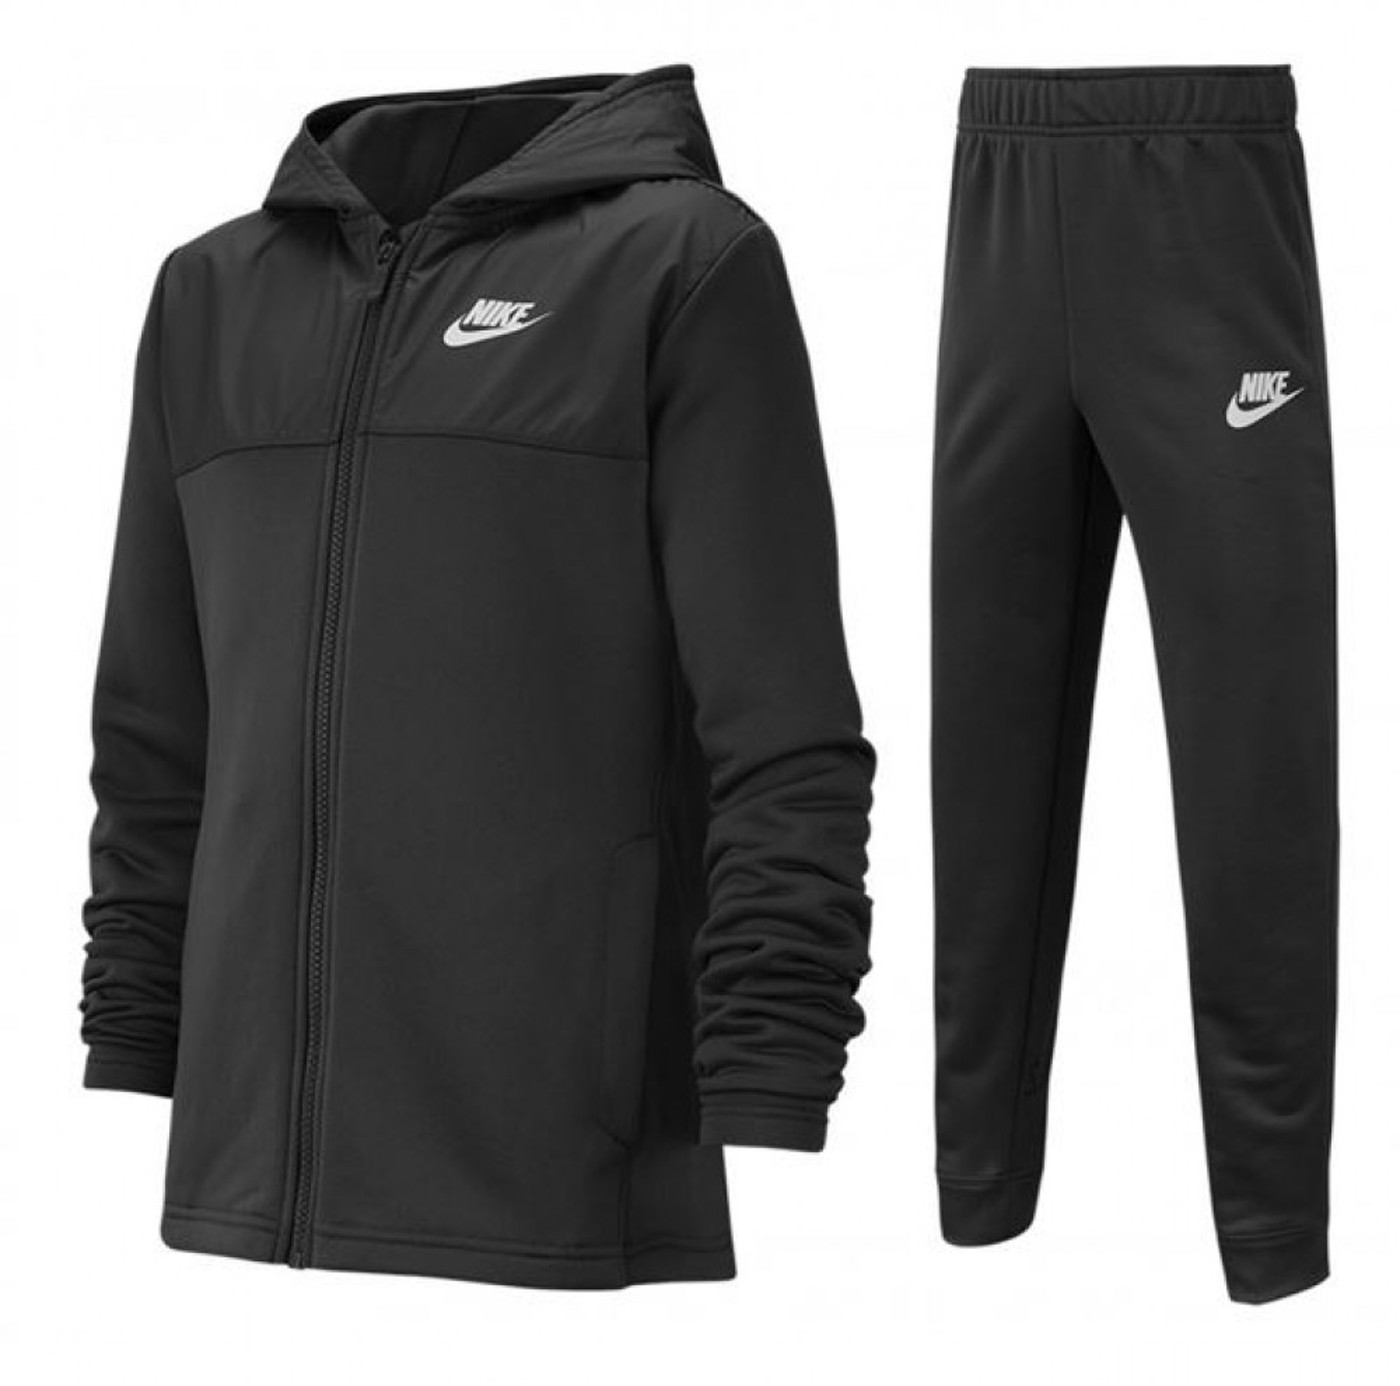 NIKE B NSW AV TRACK SUIT - Kinder